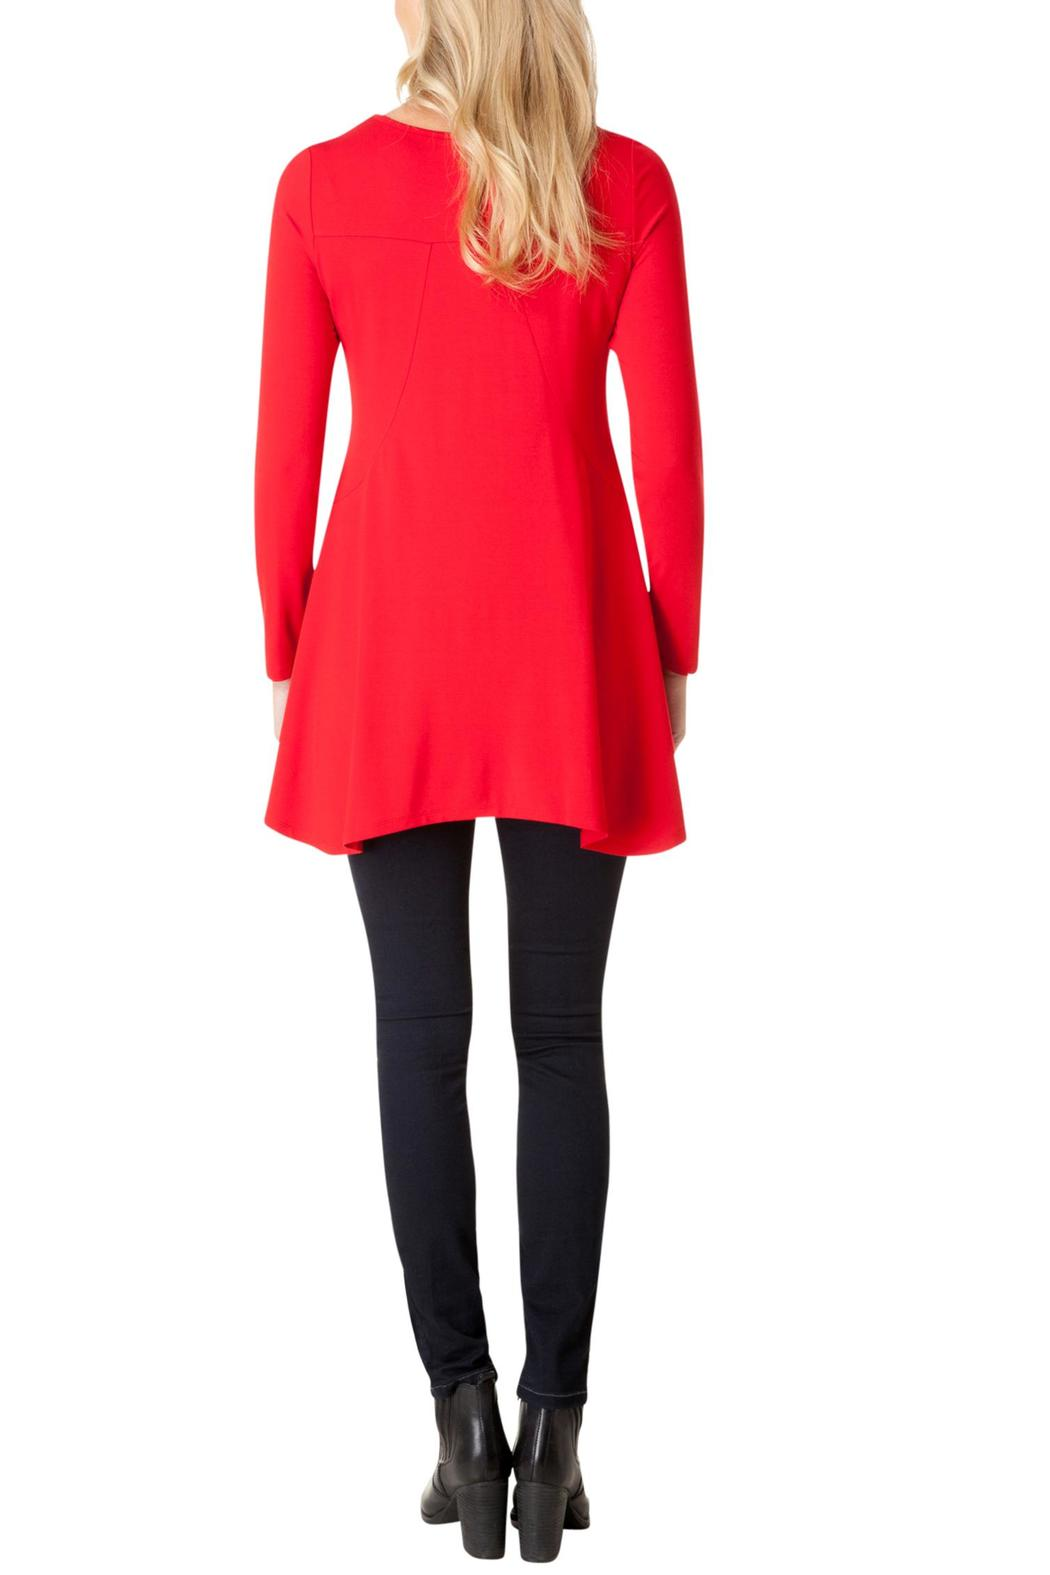 Yest Perfect Red Tunic - Front Full Image